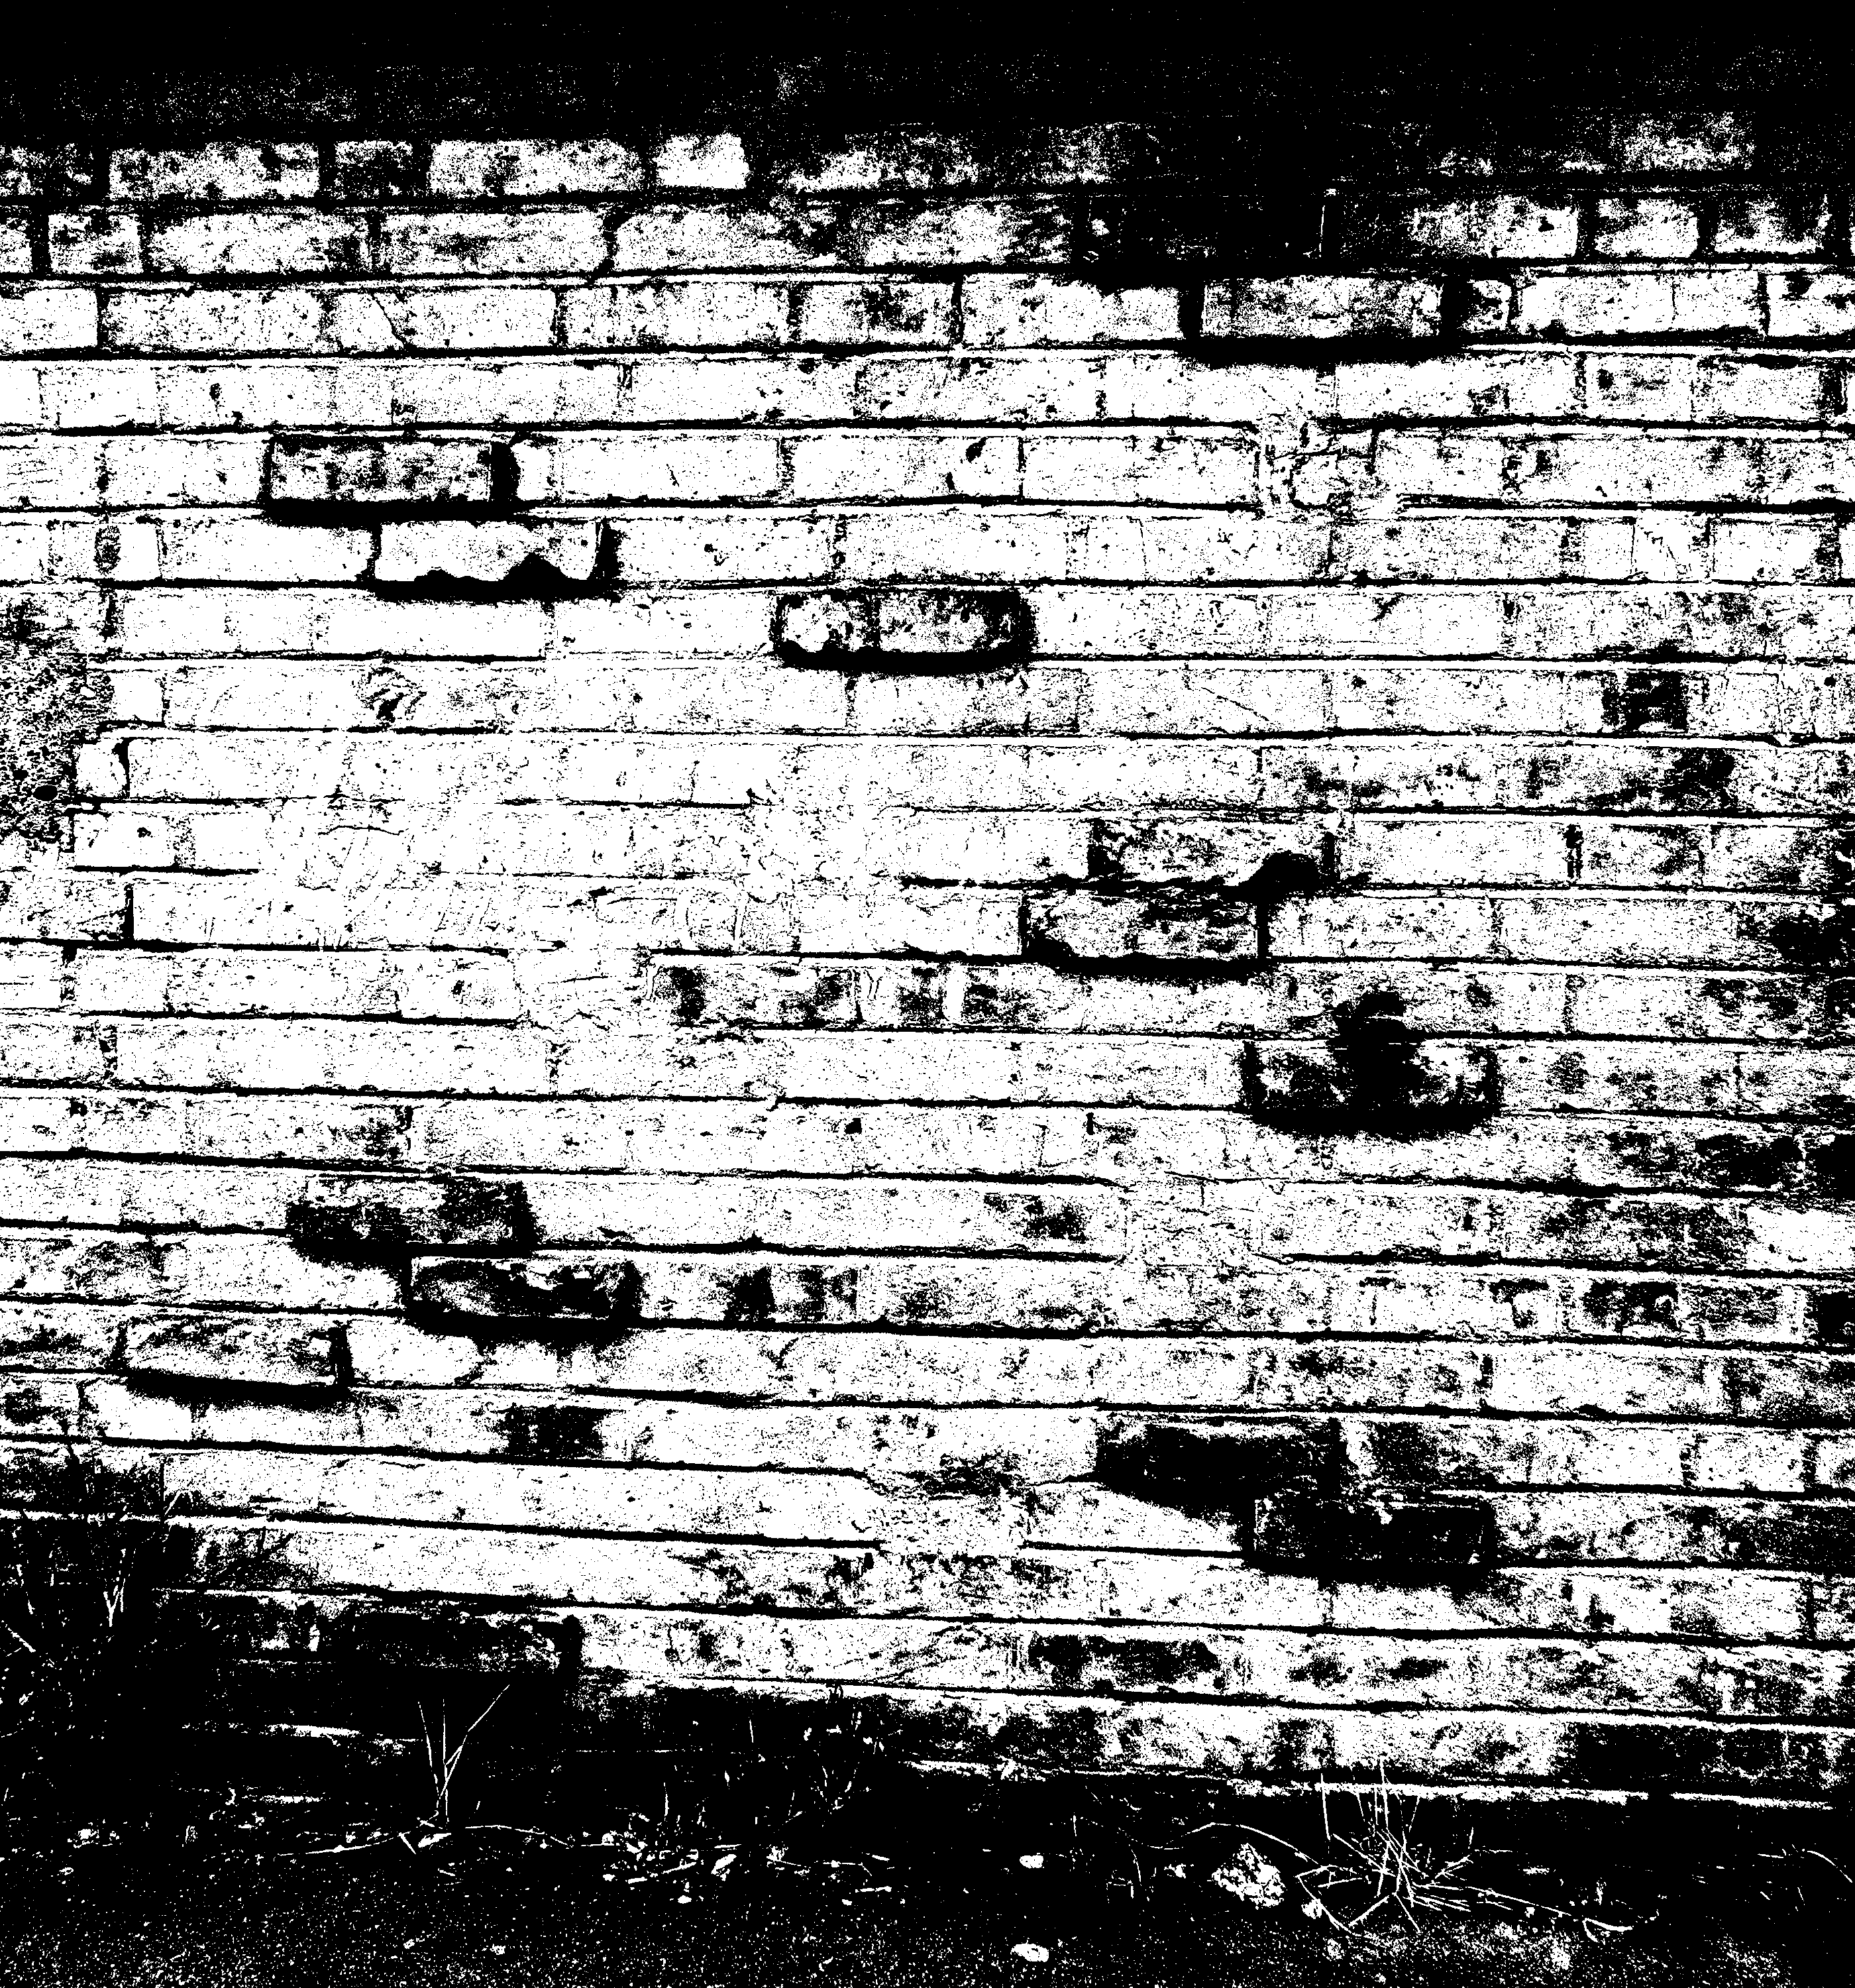 Black Brick Wall brick wall in black and white textures (png) | onlygfx